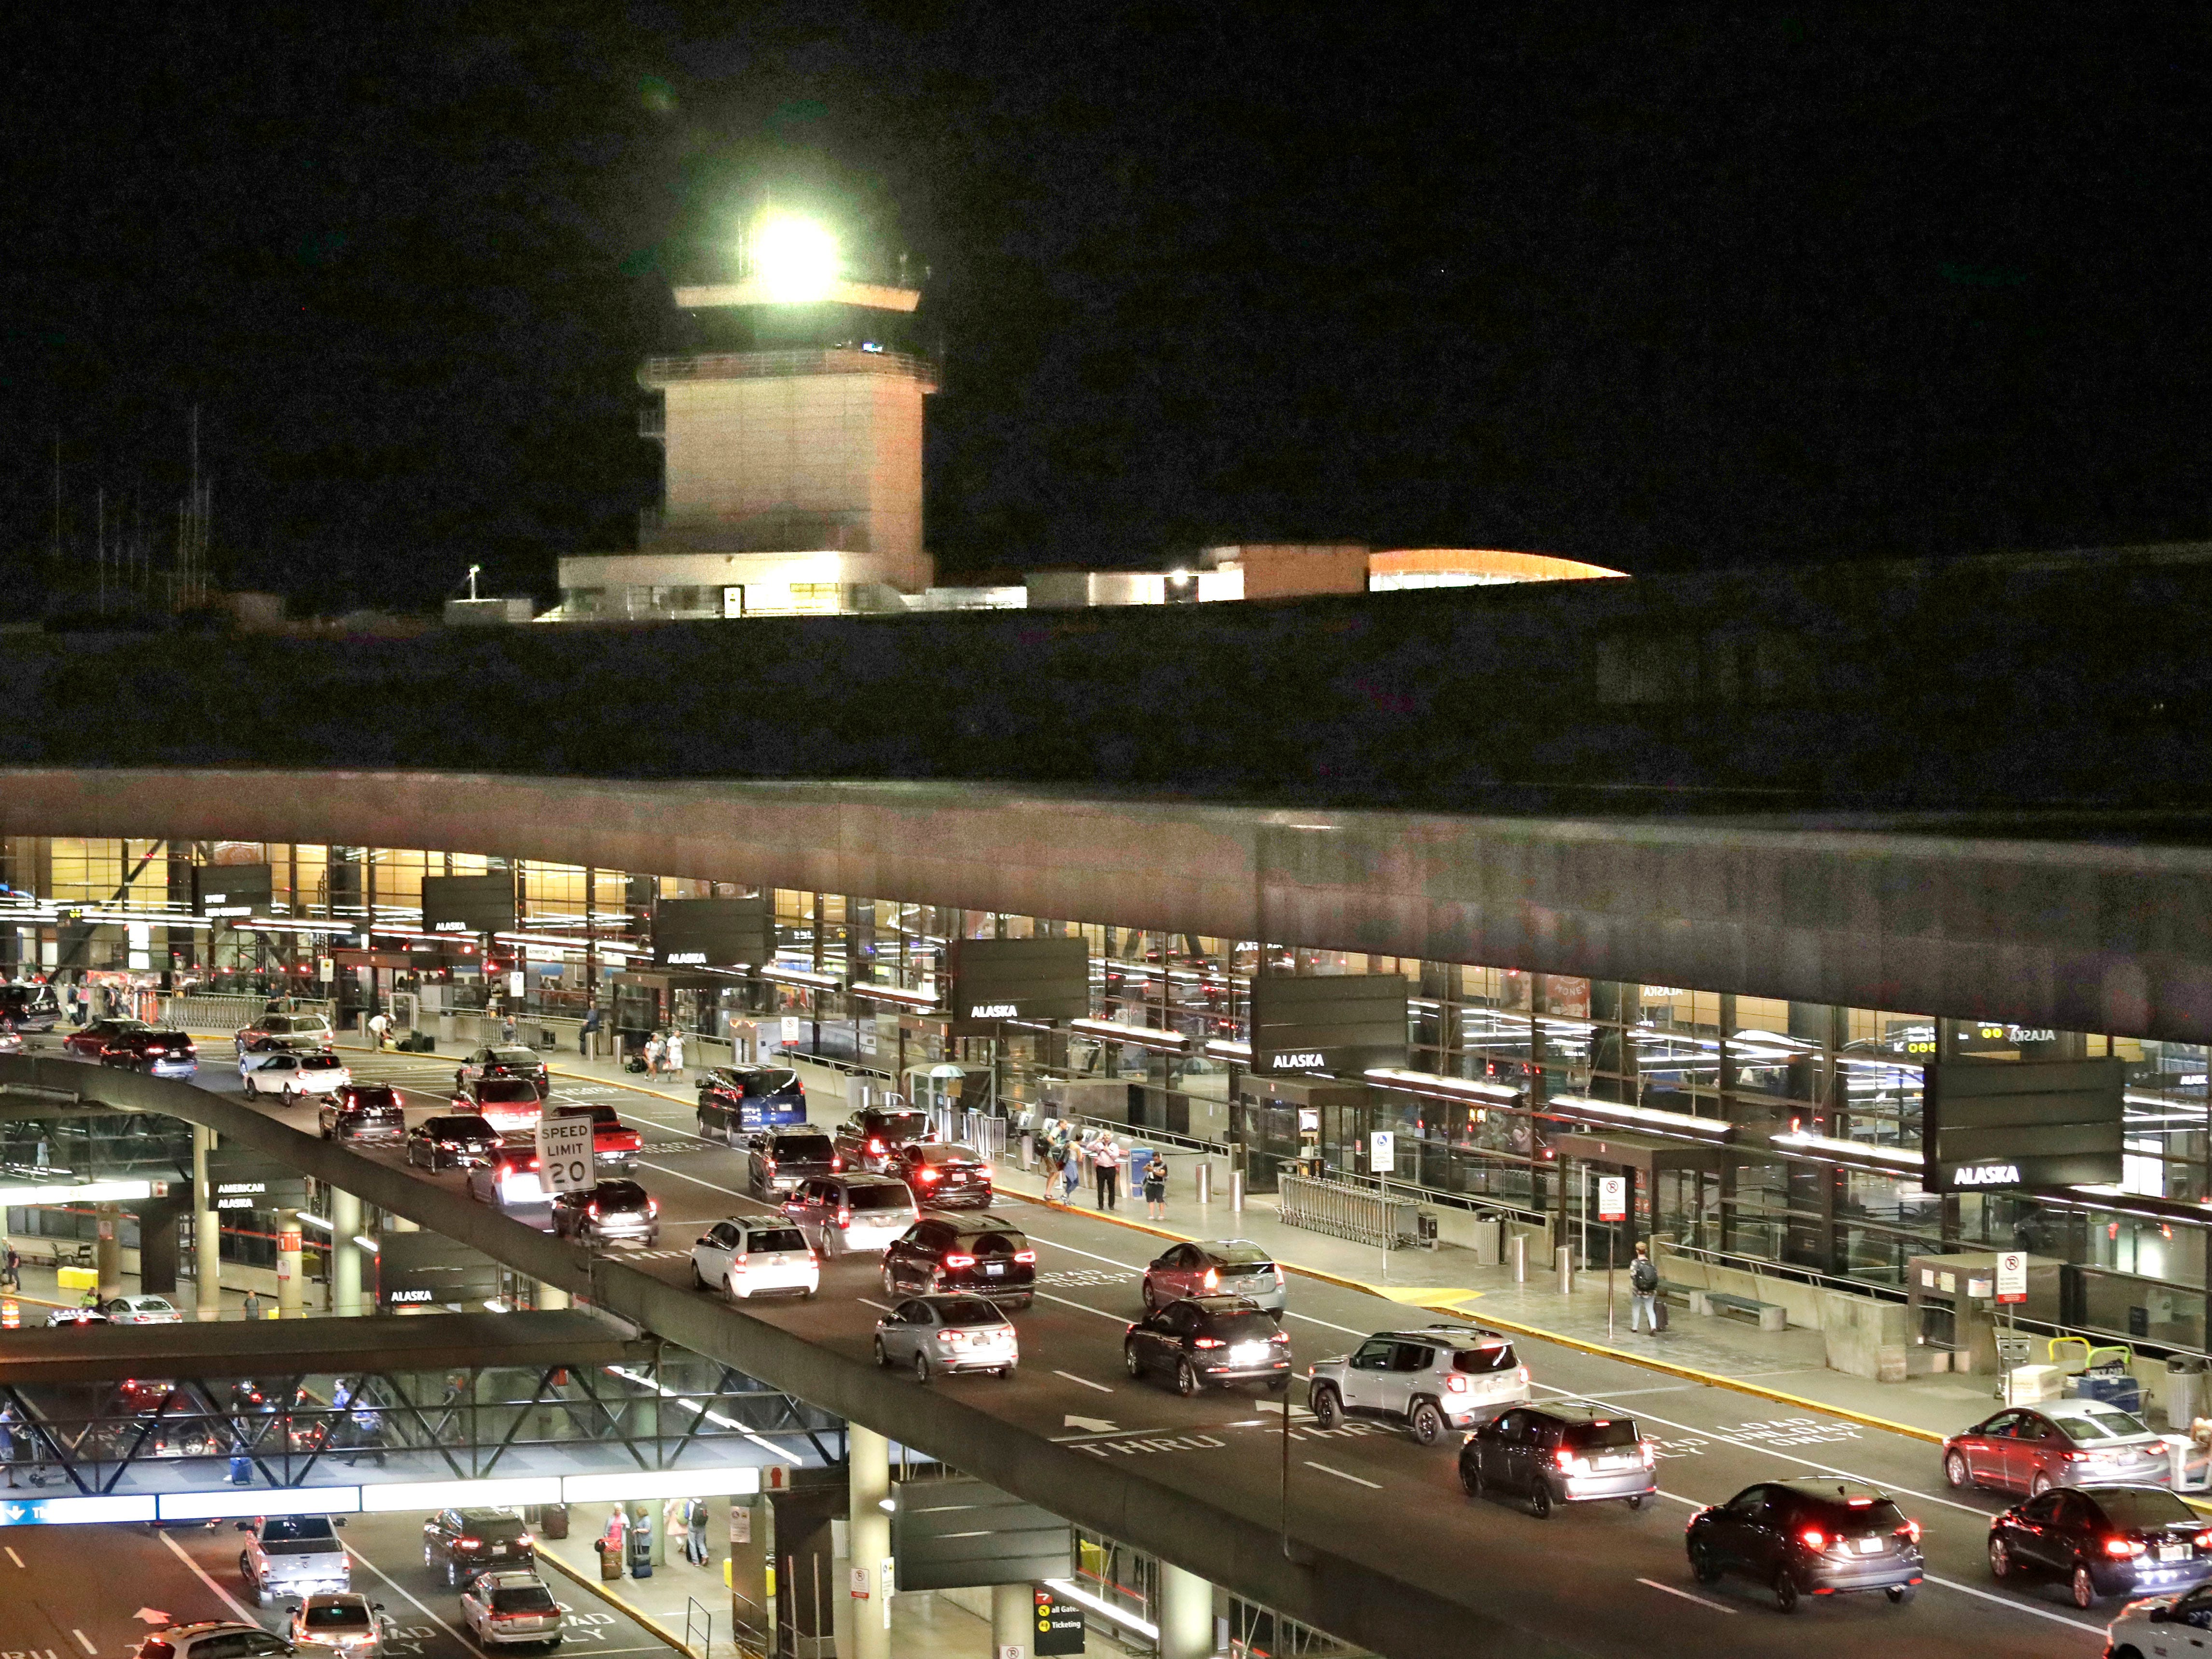 Traffic arrives at Sea-Tac International Airport terminal Friday evening, Aug. 10, 2018, in SeaTac, Wash. An airline mechanic stole an Alaska Airlines plane without any passengers and took off from Sea-Tac International Airport in Washington state on Friday night before crashing near Ketron Island, officials said.(AP Photo/Elaine Thompson) ORG XMIT: WAET107